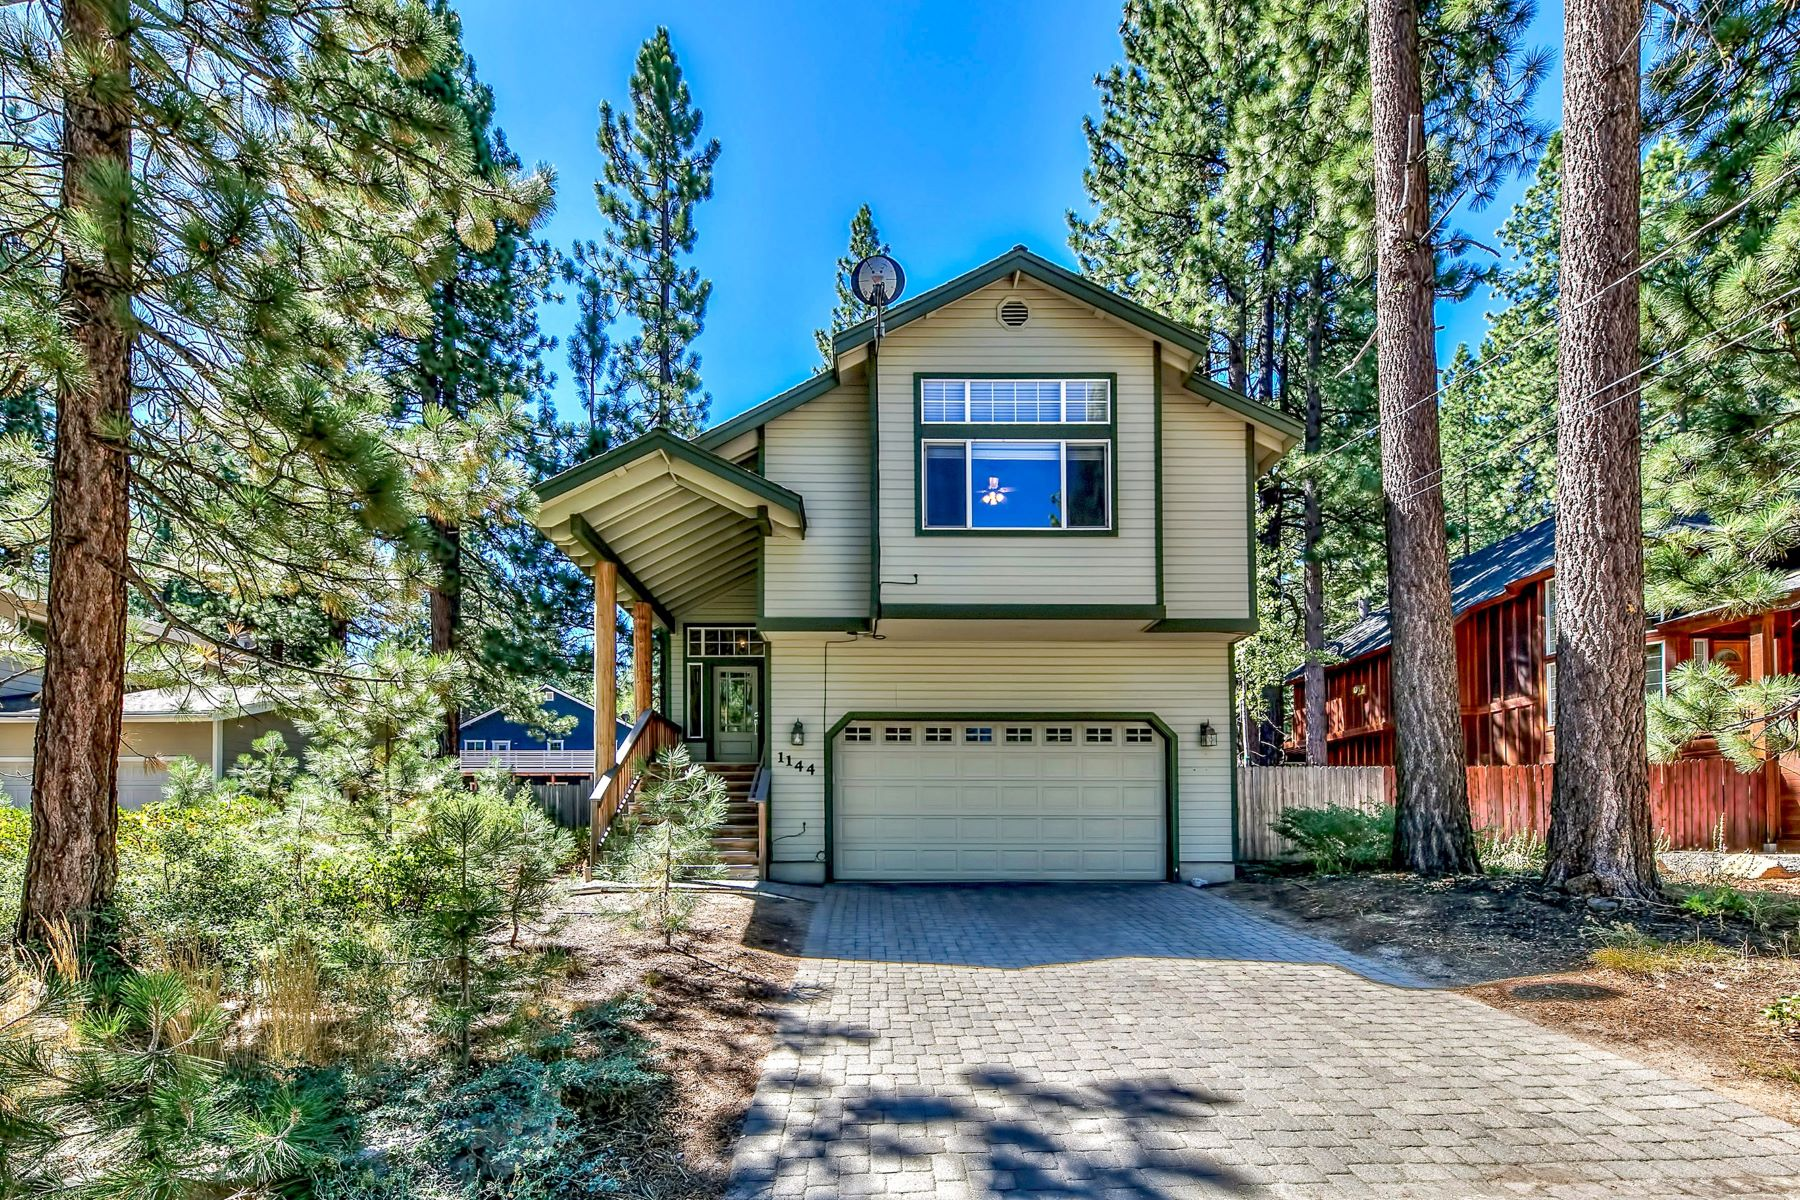 Single Family Homes for Active at 1144 Golden Bear Trail, South Lake Tahoe, CA 96150 1144 Golden Bear Trail South Lake Tahoe, California 96150 United States